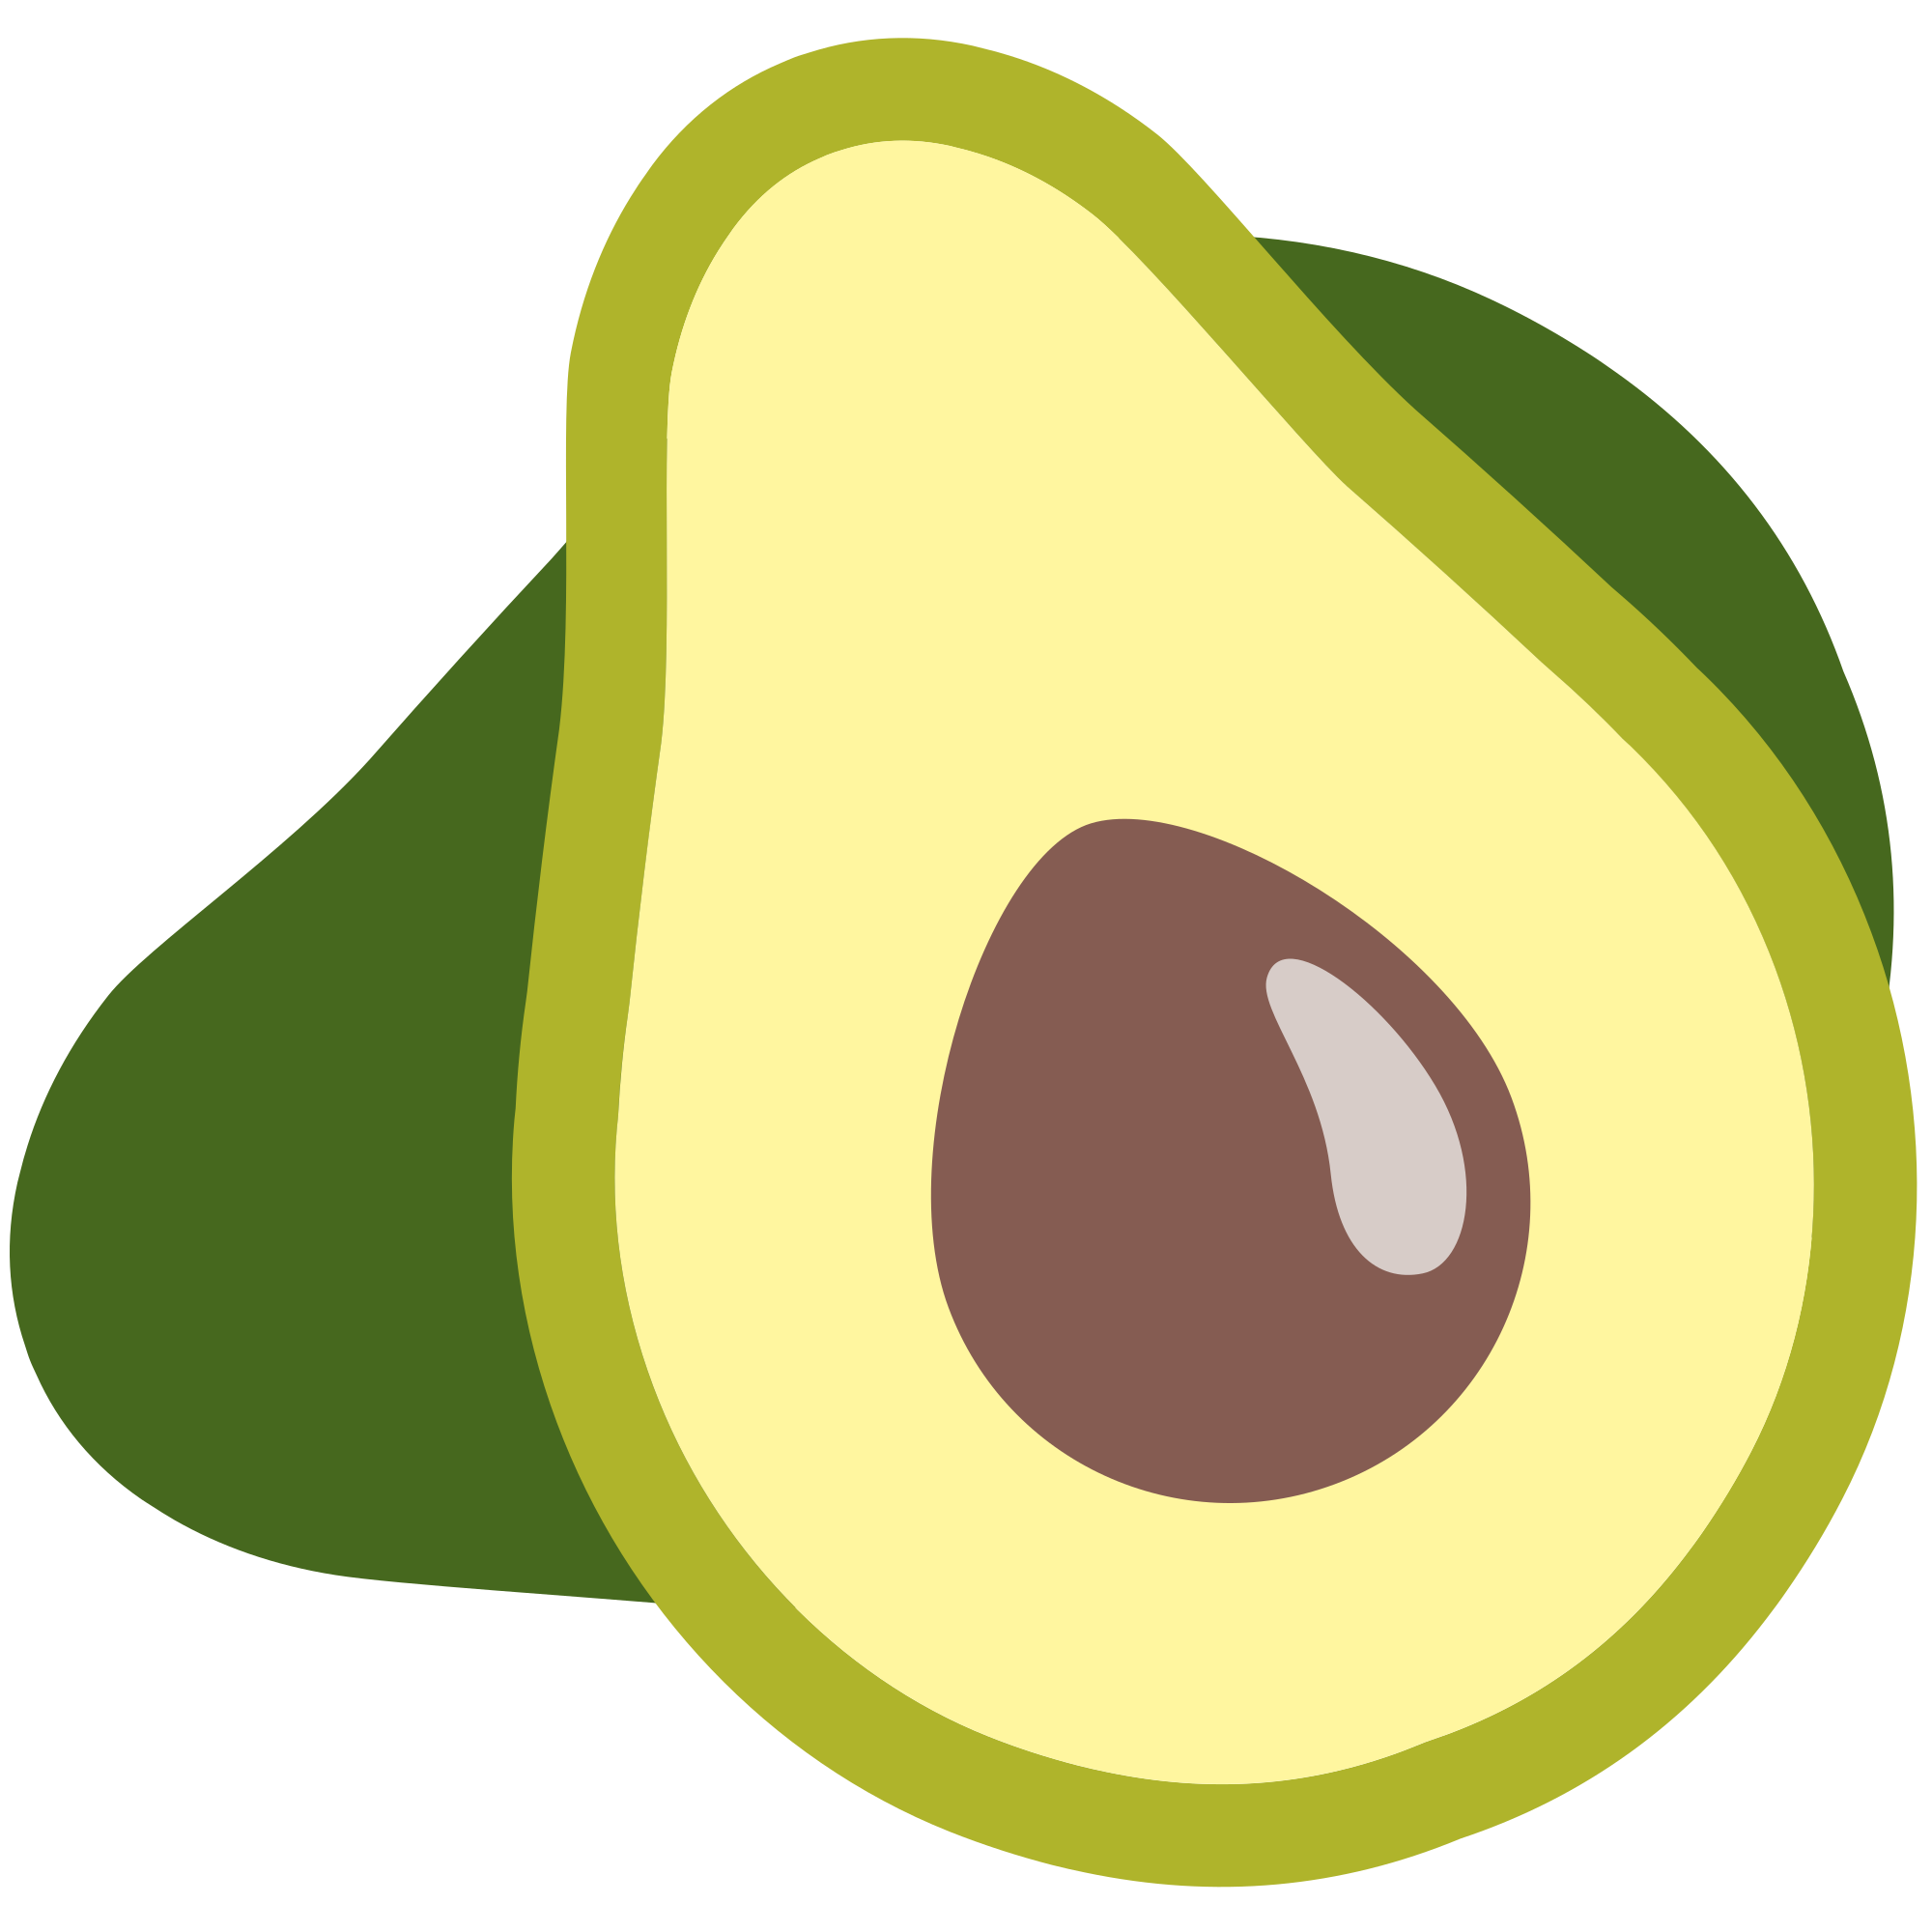 Avocado emoji png. File u f svg